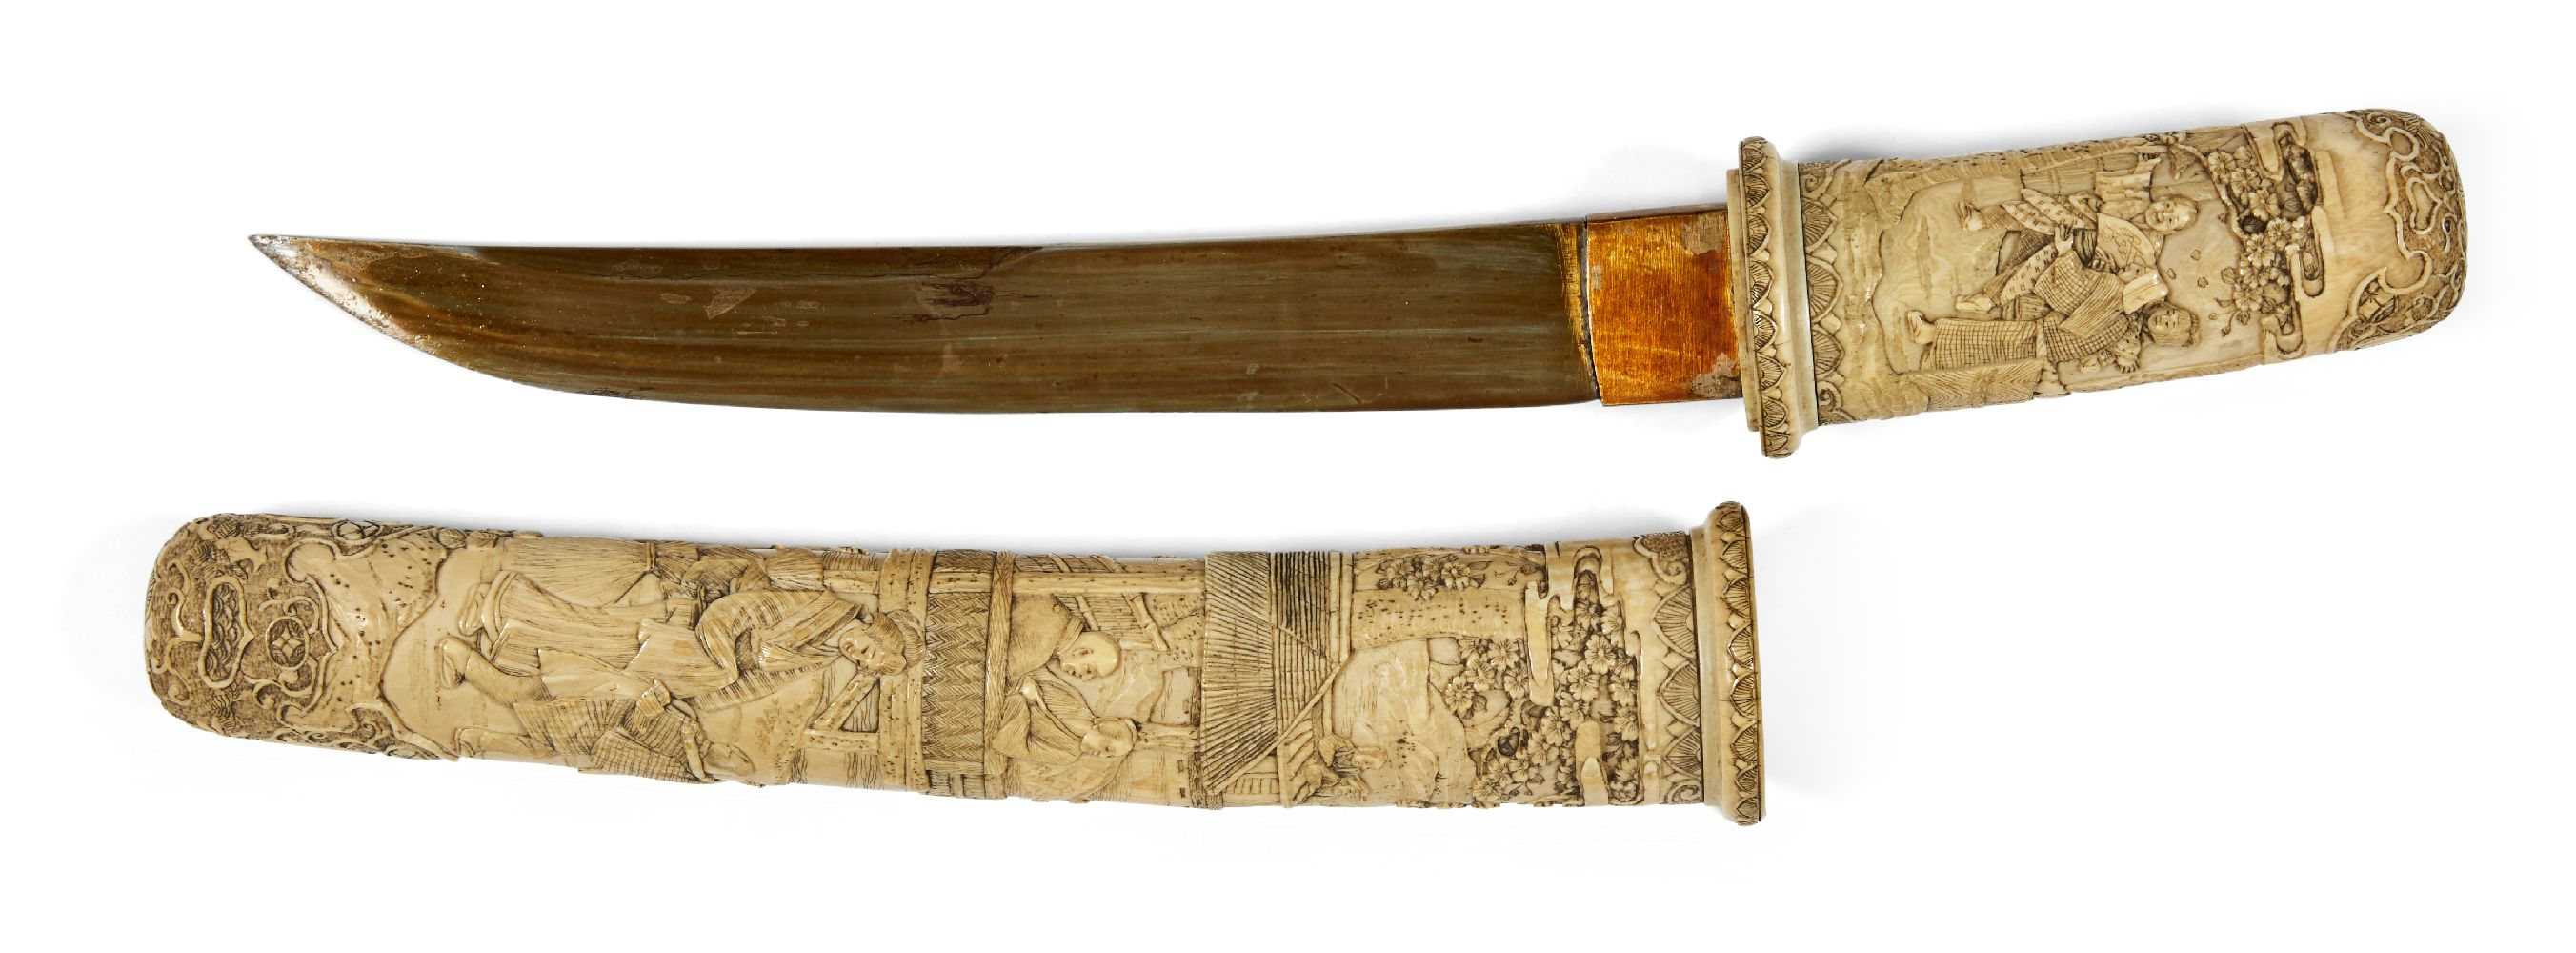 A Japanese carved ivory tanto, Meiji period, in slightly curved form, the scabbard and handle carved